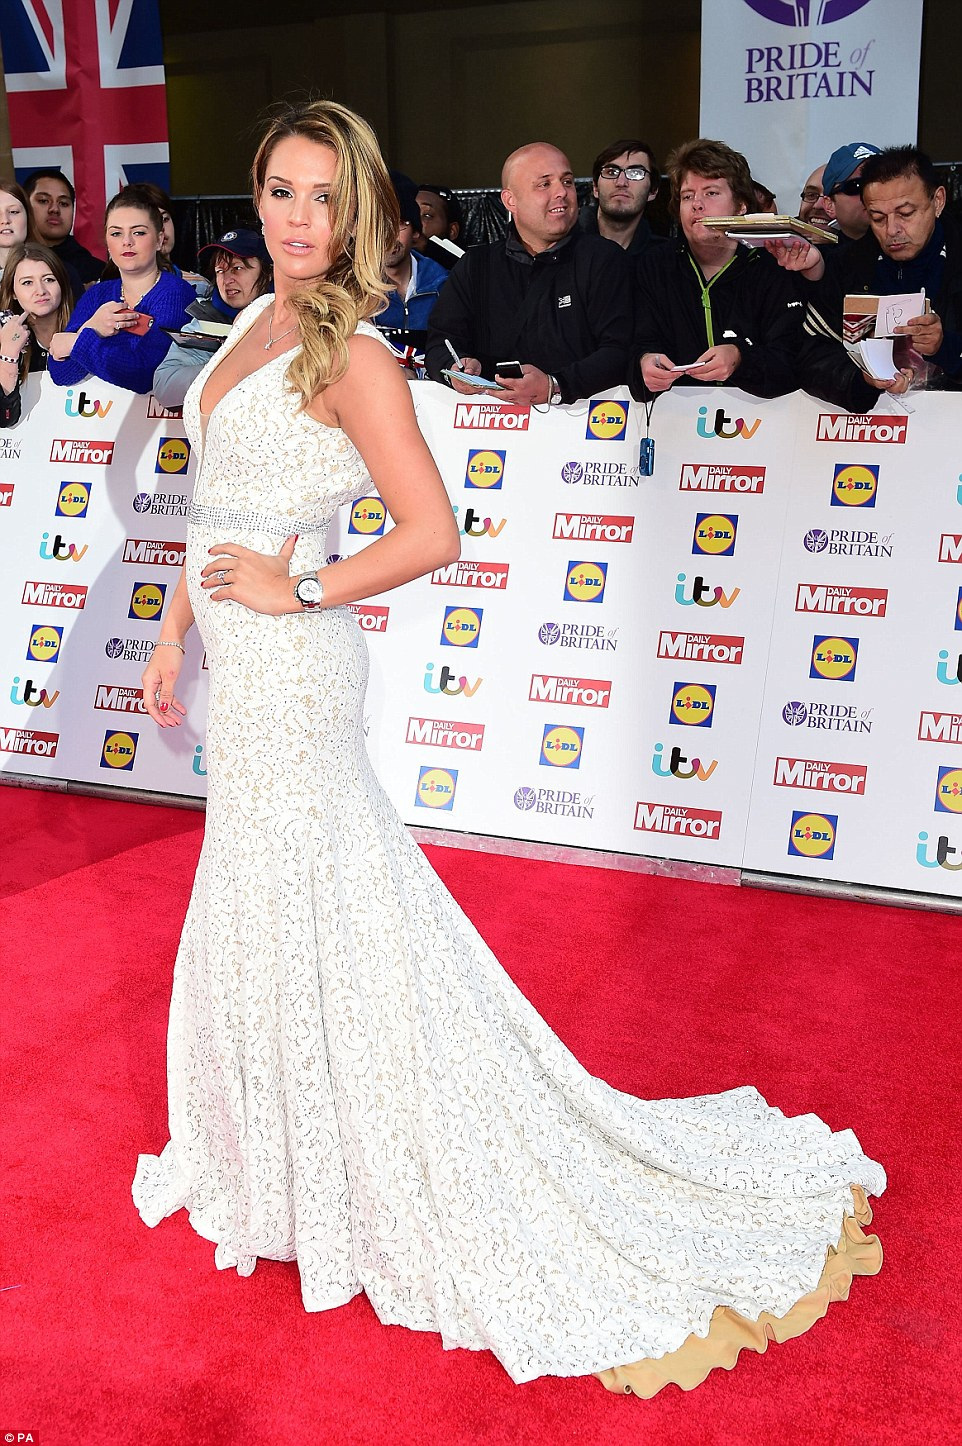 Turning heads: Danielle Lloydoozed heaps of elegance in a striking white gown, which boasted a plunging bodice and a fishtail skirt that highlighted her lean and slender frame to perfection